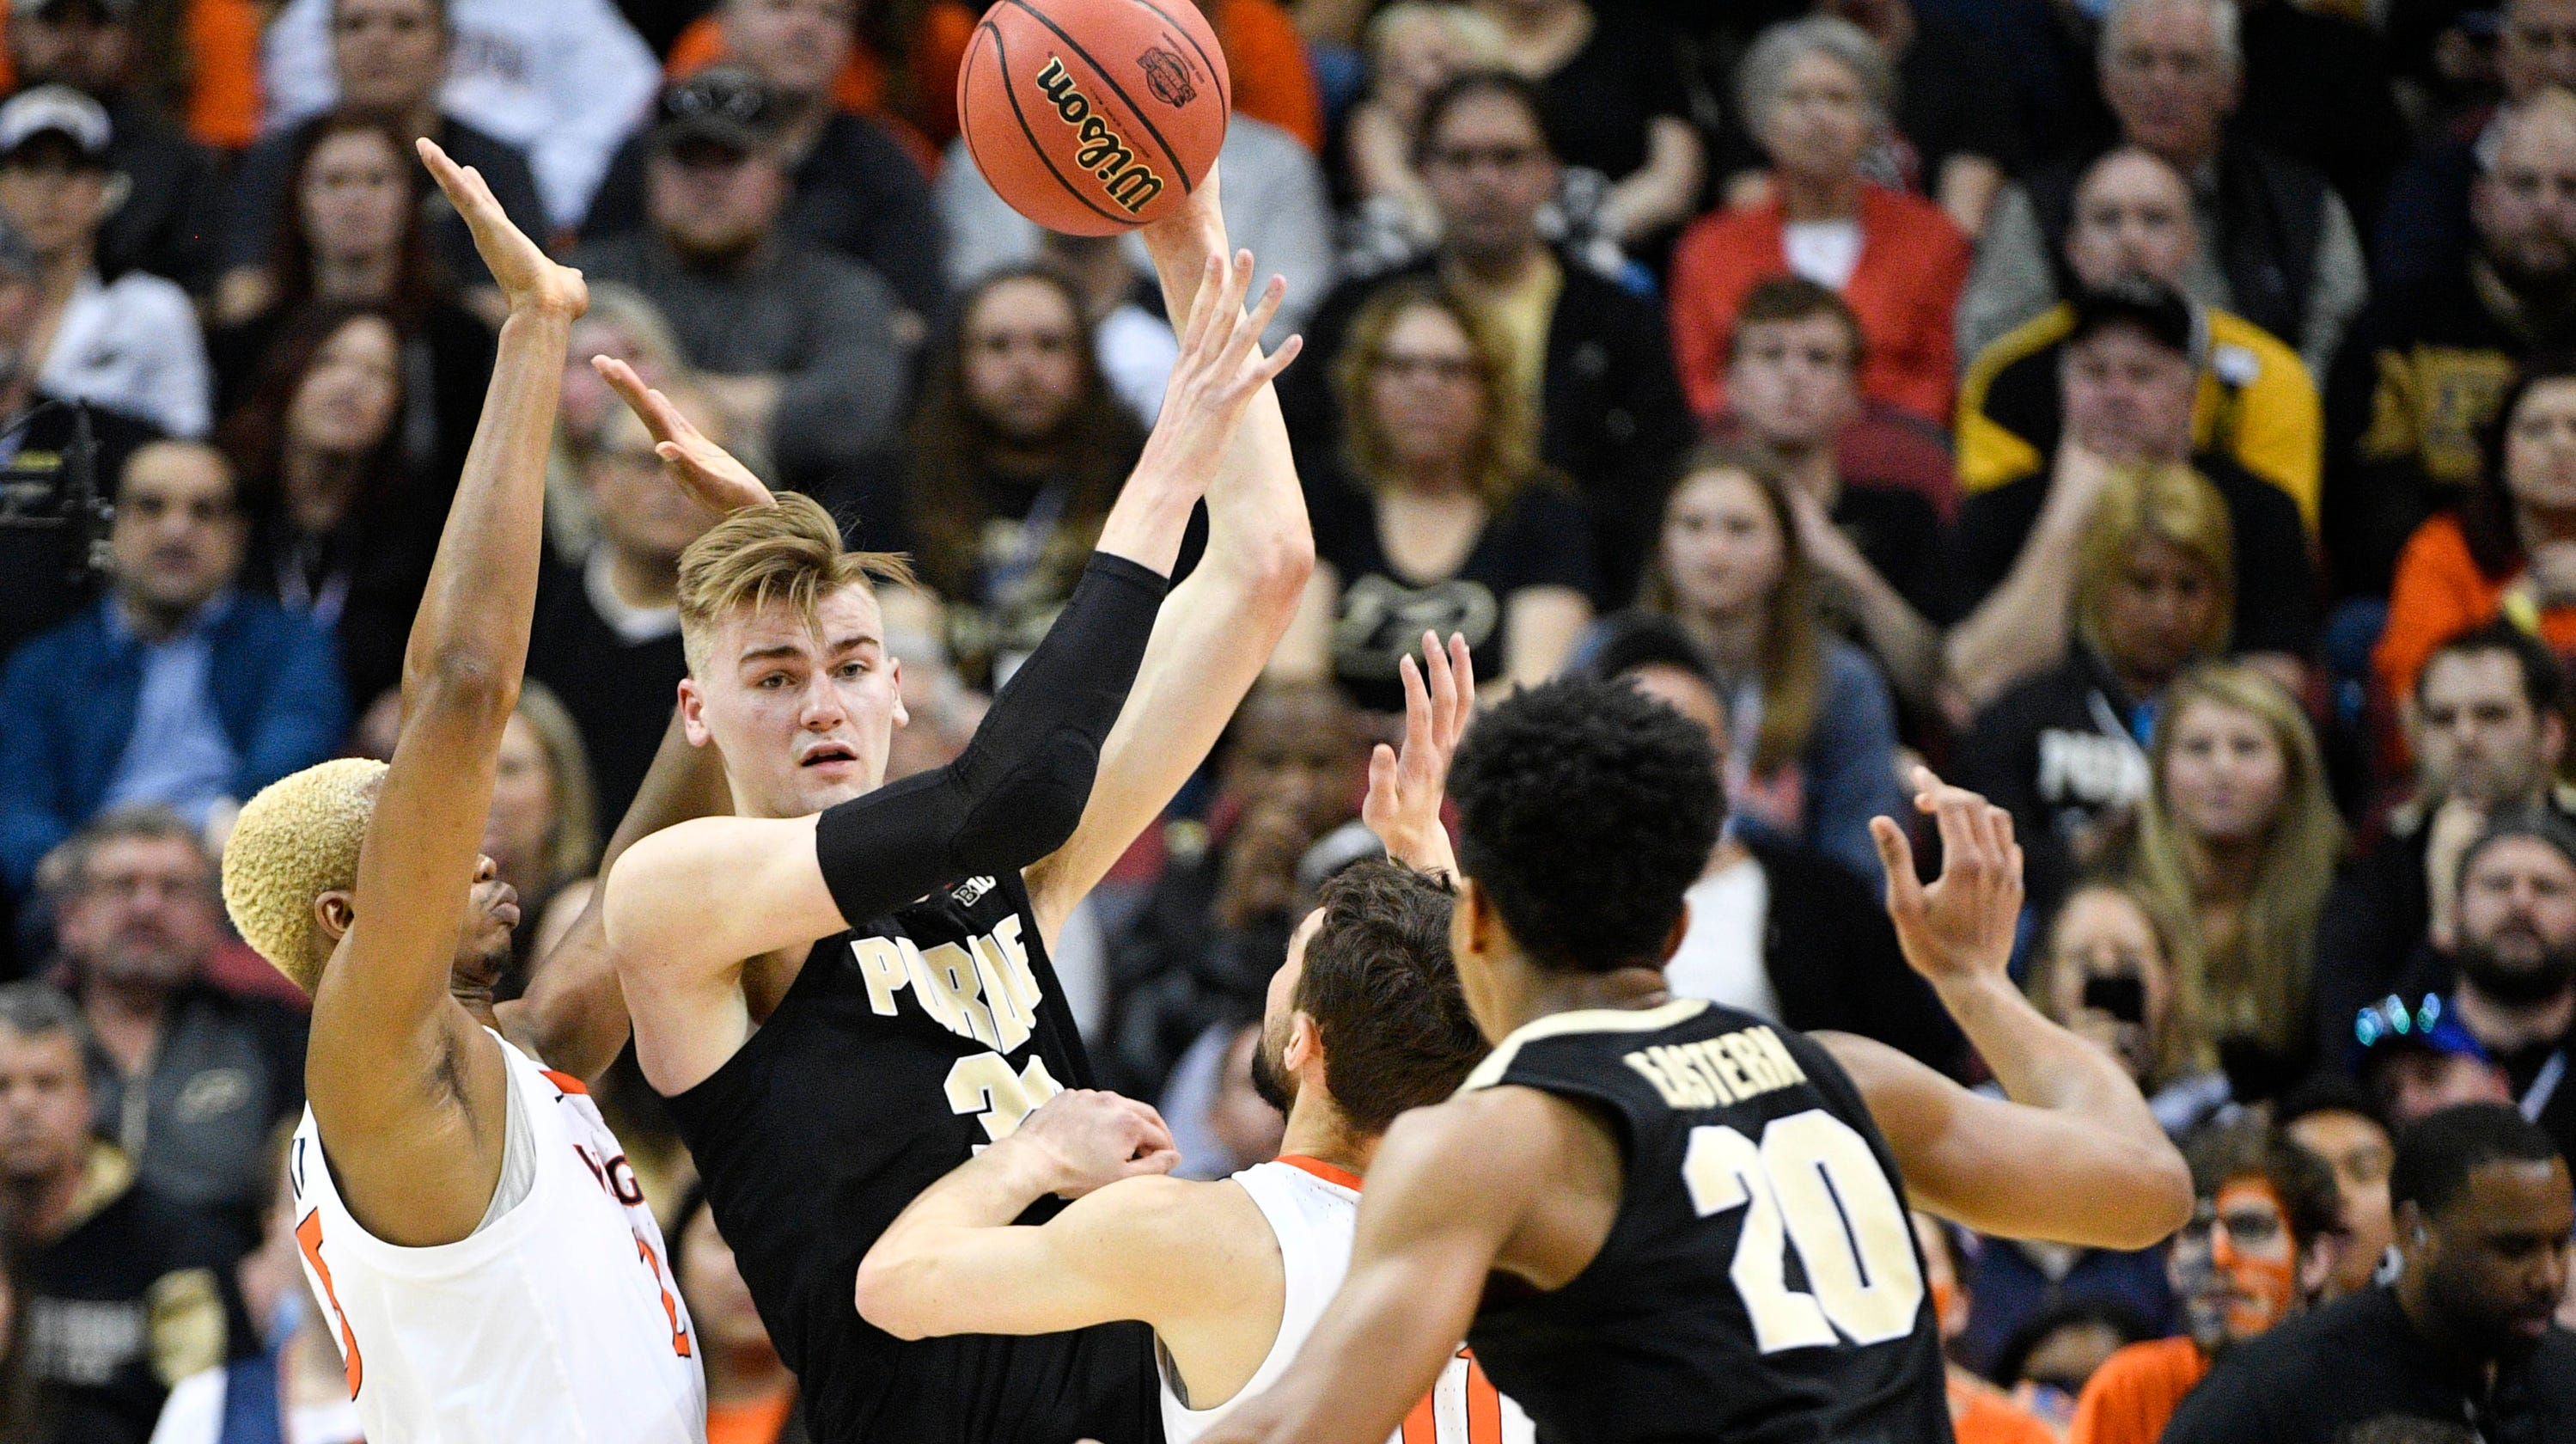 908c0cb41c2a Purdue basketball s 2019-20 schedule could again help form team s long-term  identity